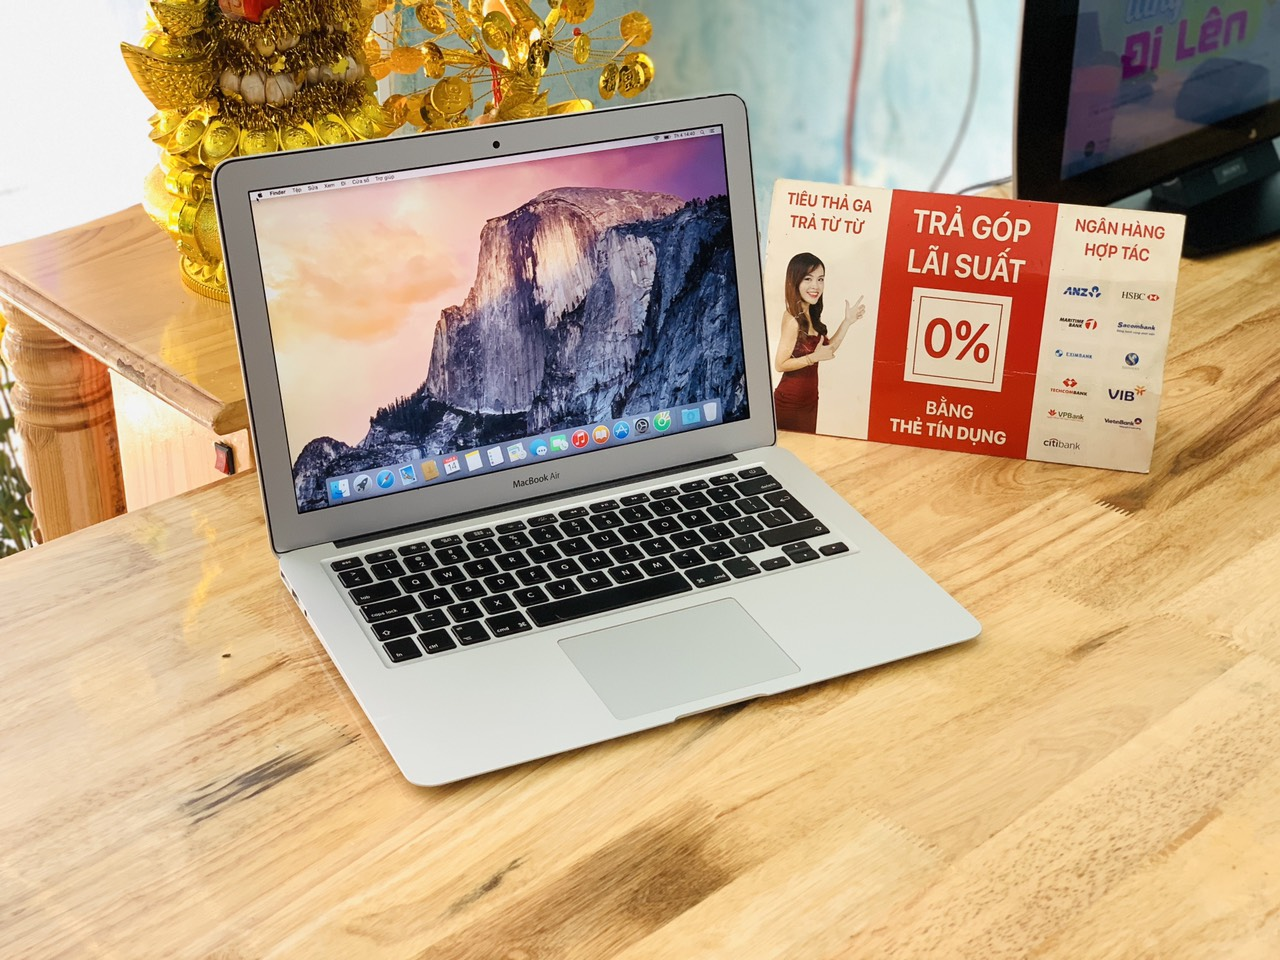 Macbook Air 2014 i5 Ram 4GB SSD 128GB 13inch máy Like New